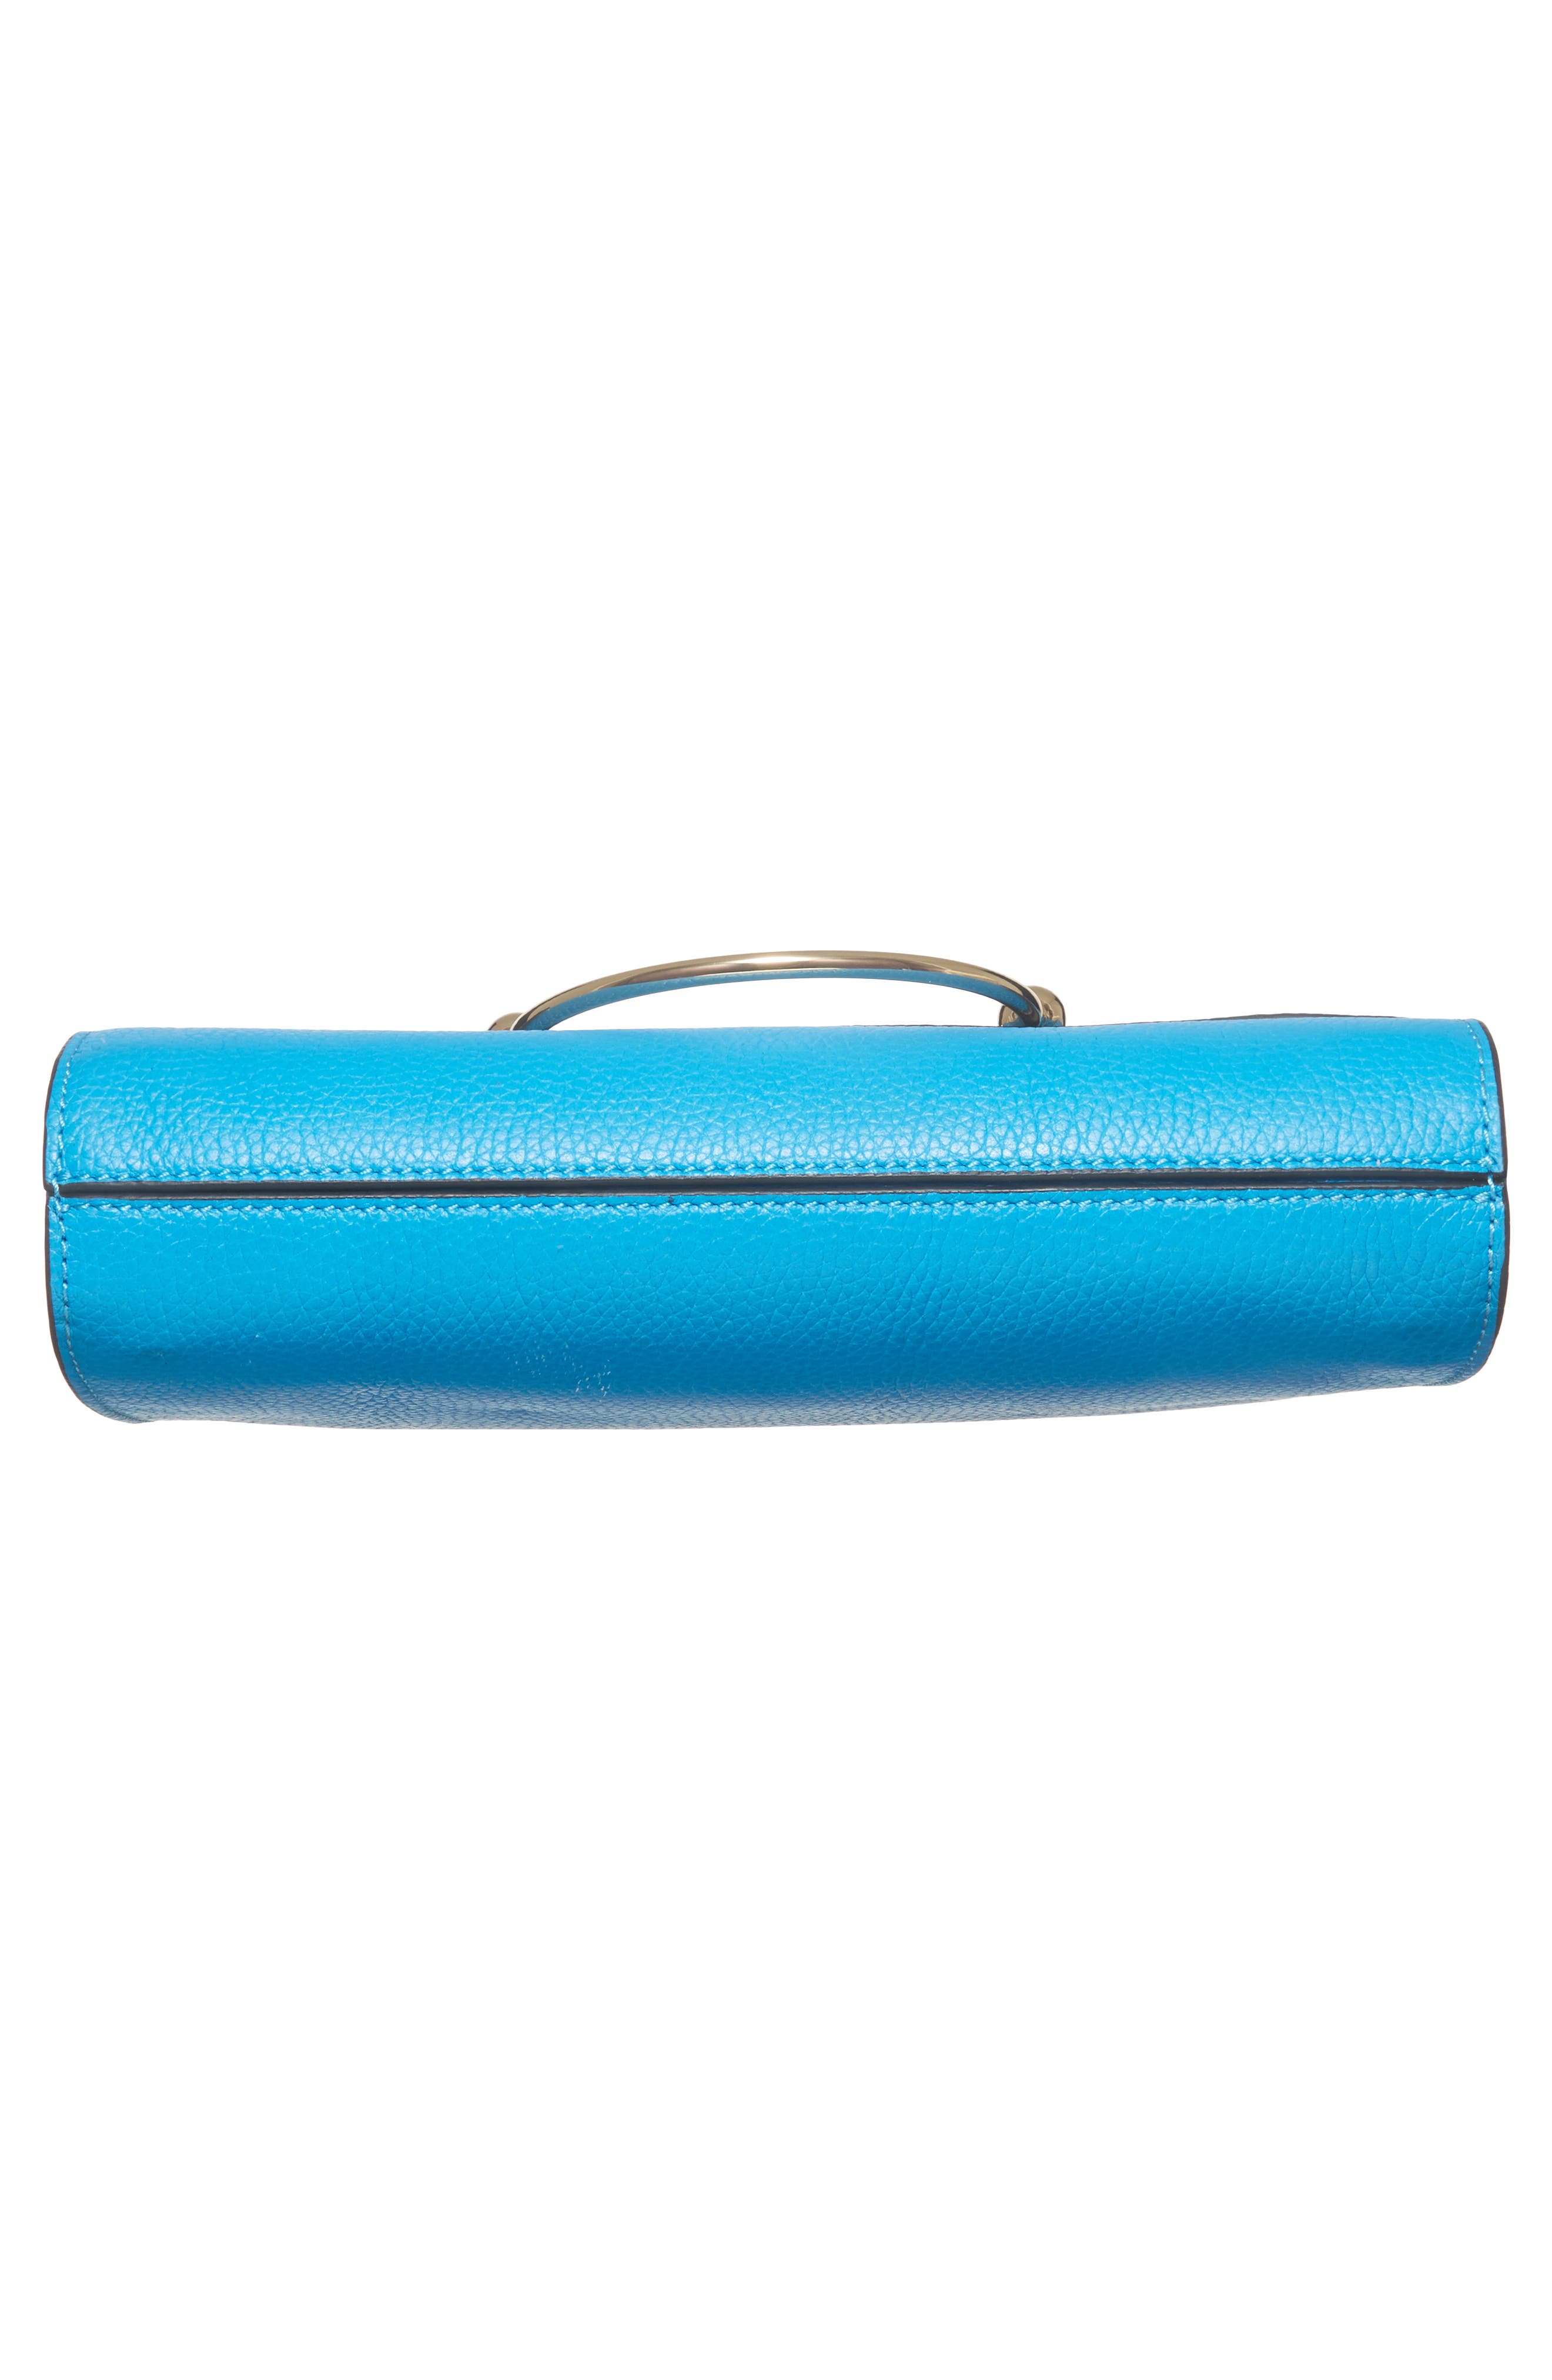 Astor Pebbled Leather Flap Clutch,                             Alternate thumbnail 23, color,